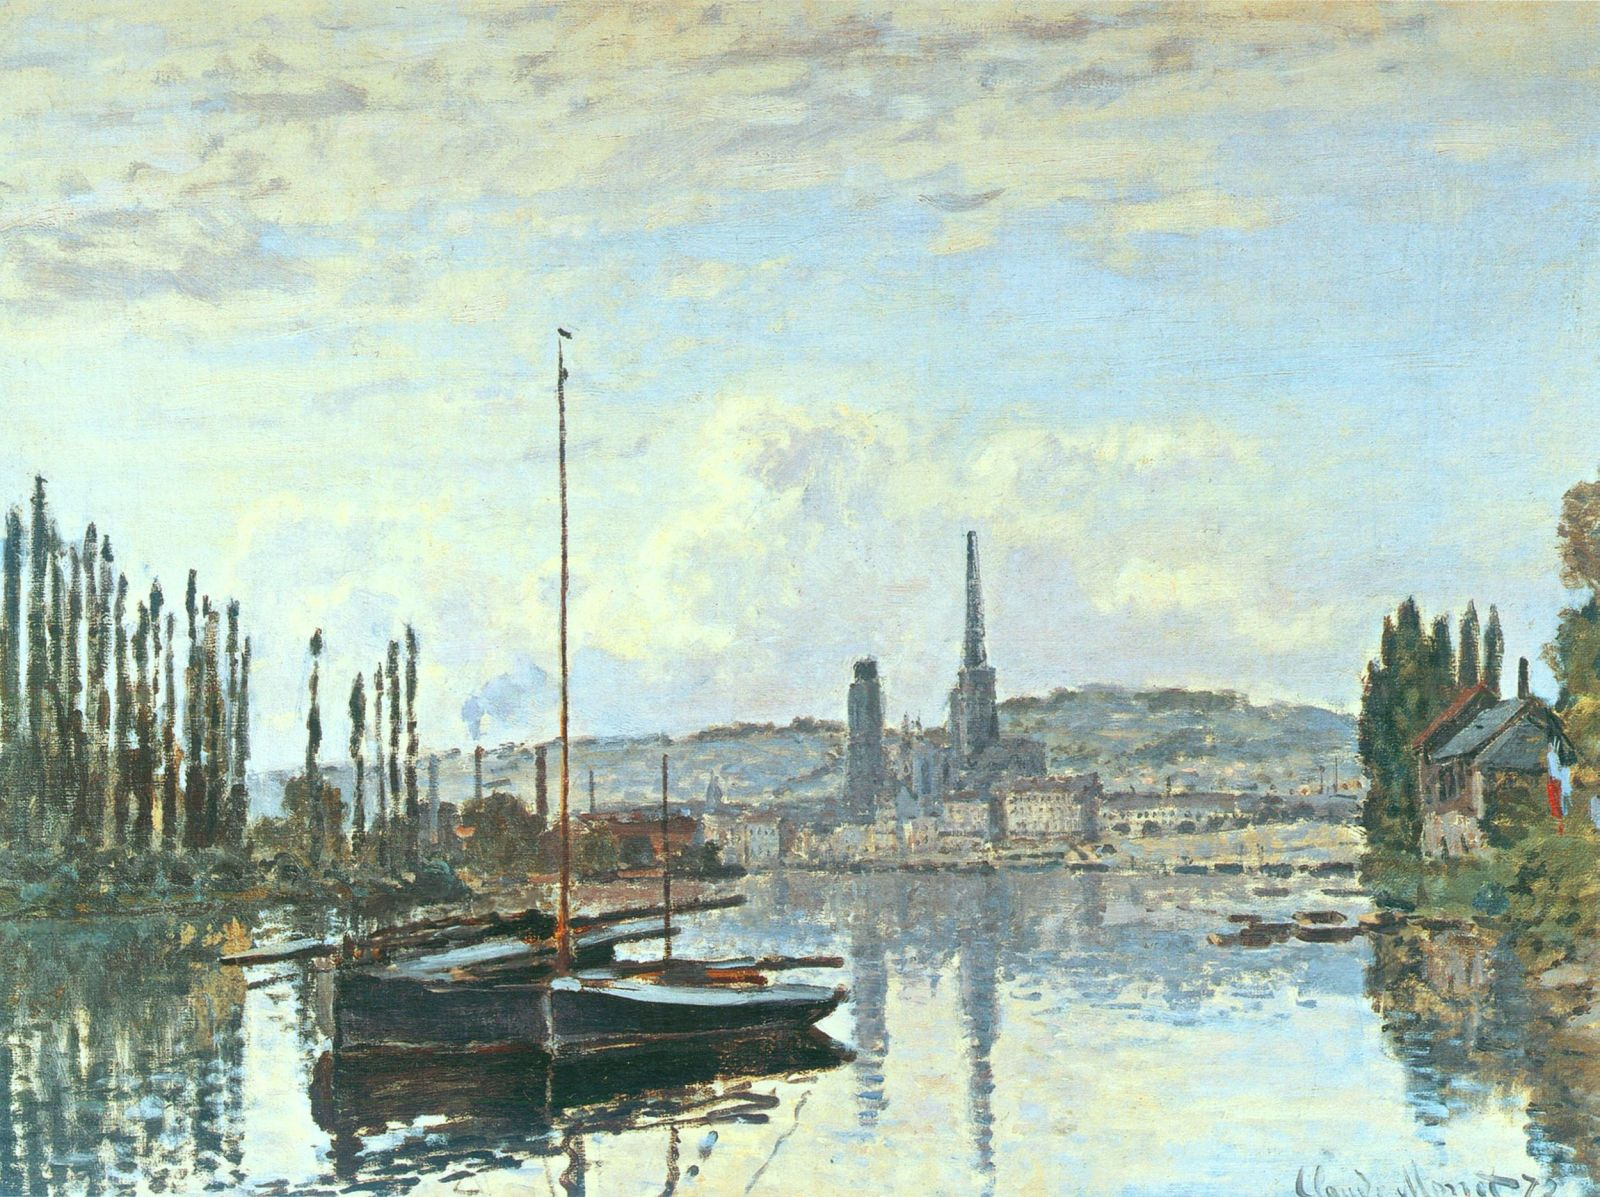 View of Rouen by @claude_monet #impressionism